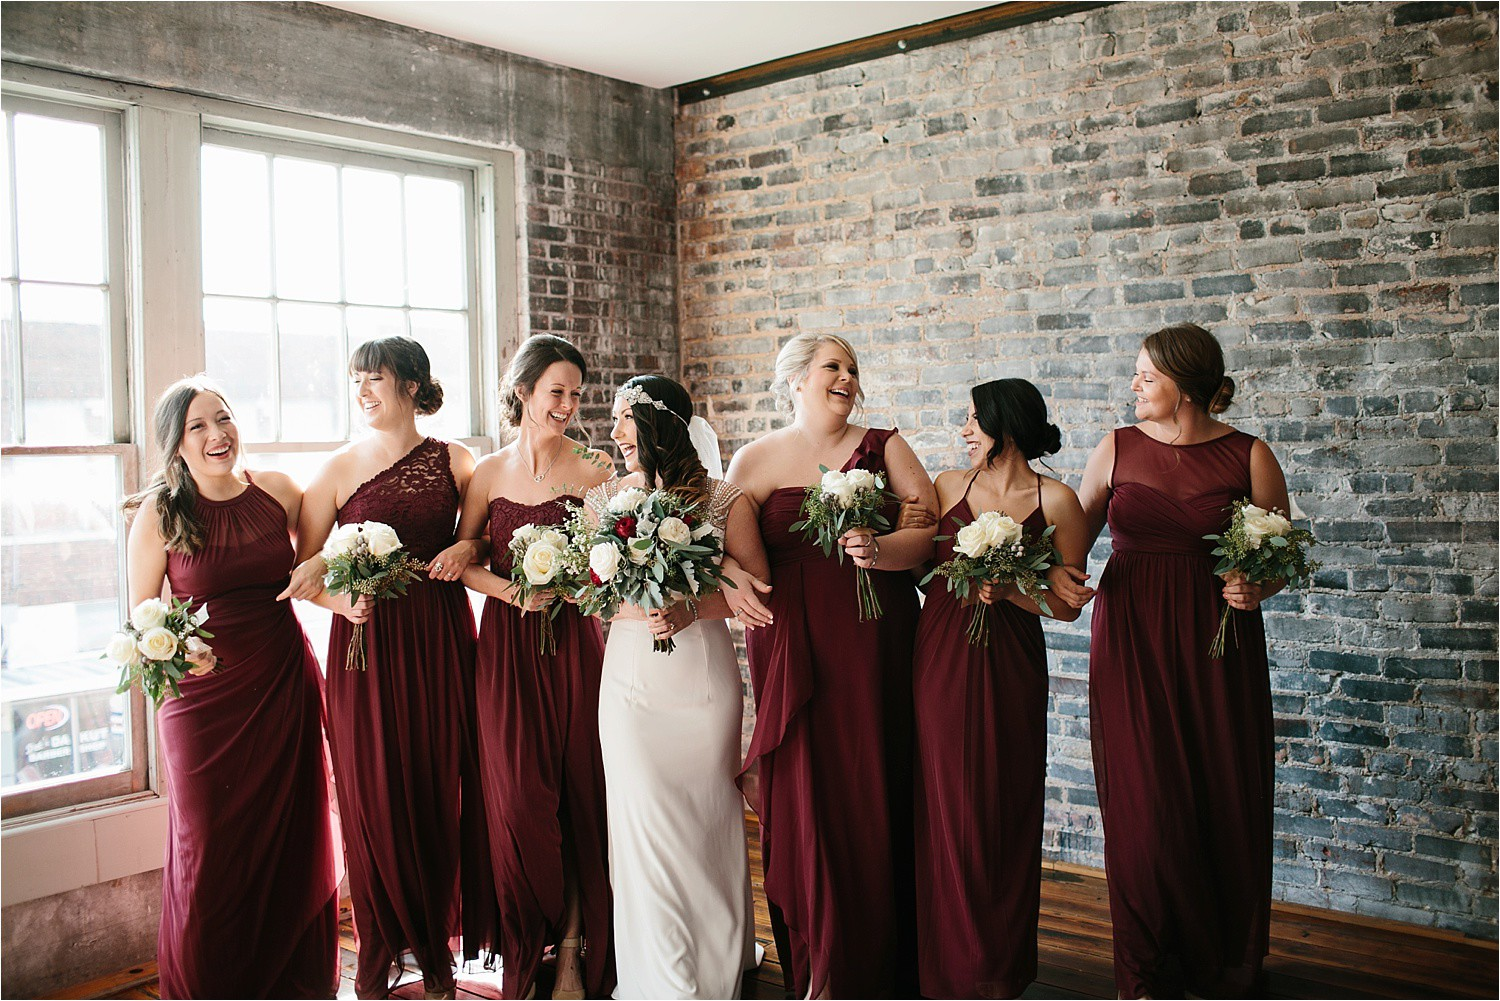 whittney-drew-__-an-intimate-wine-and-navy-wedding-in-an-industrial-venue-at-loft-123-in-paris-tx-by-north-texas-wedding-photographer-rachel-meagan-photography-_-034